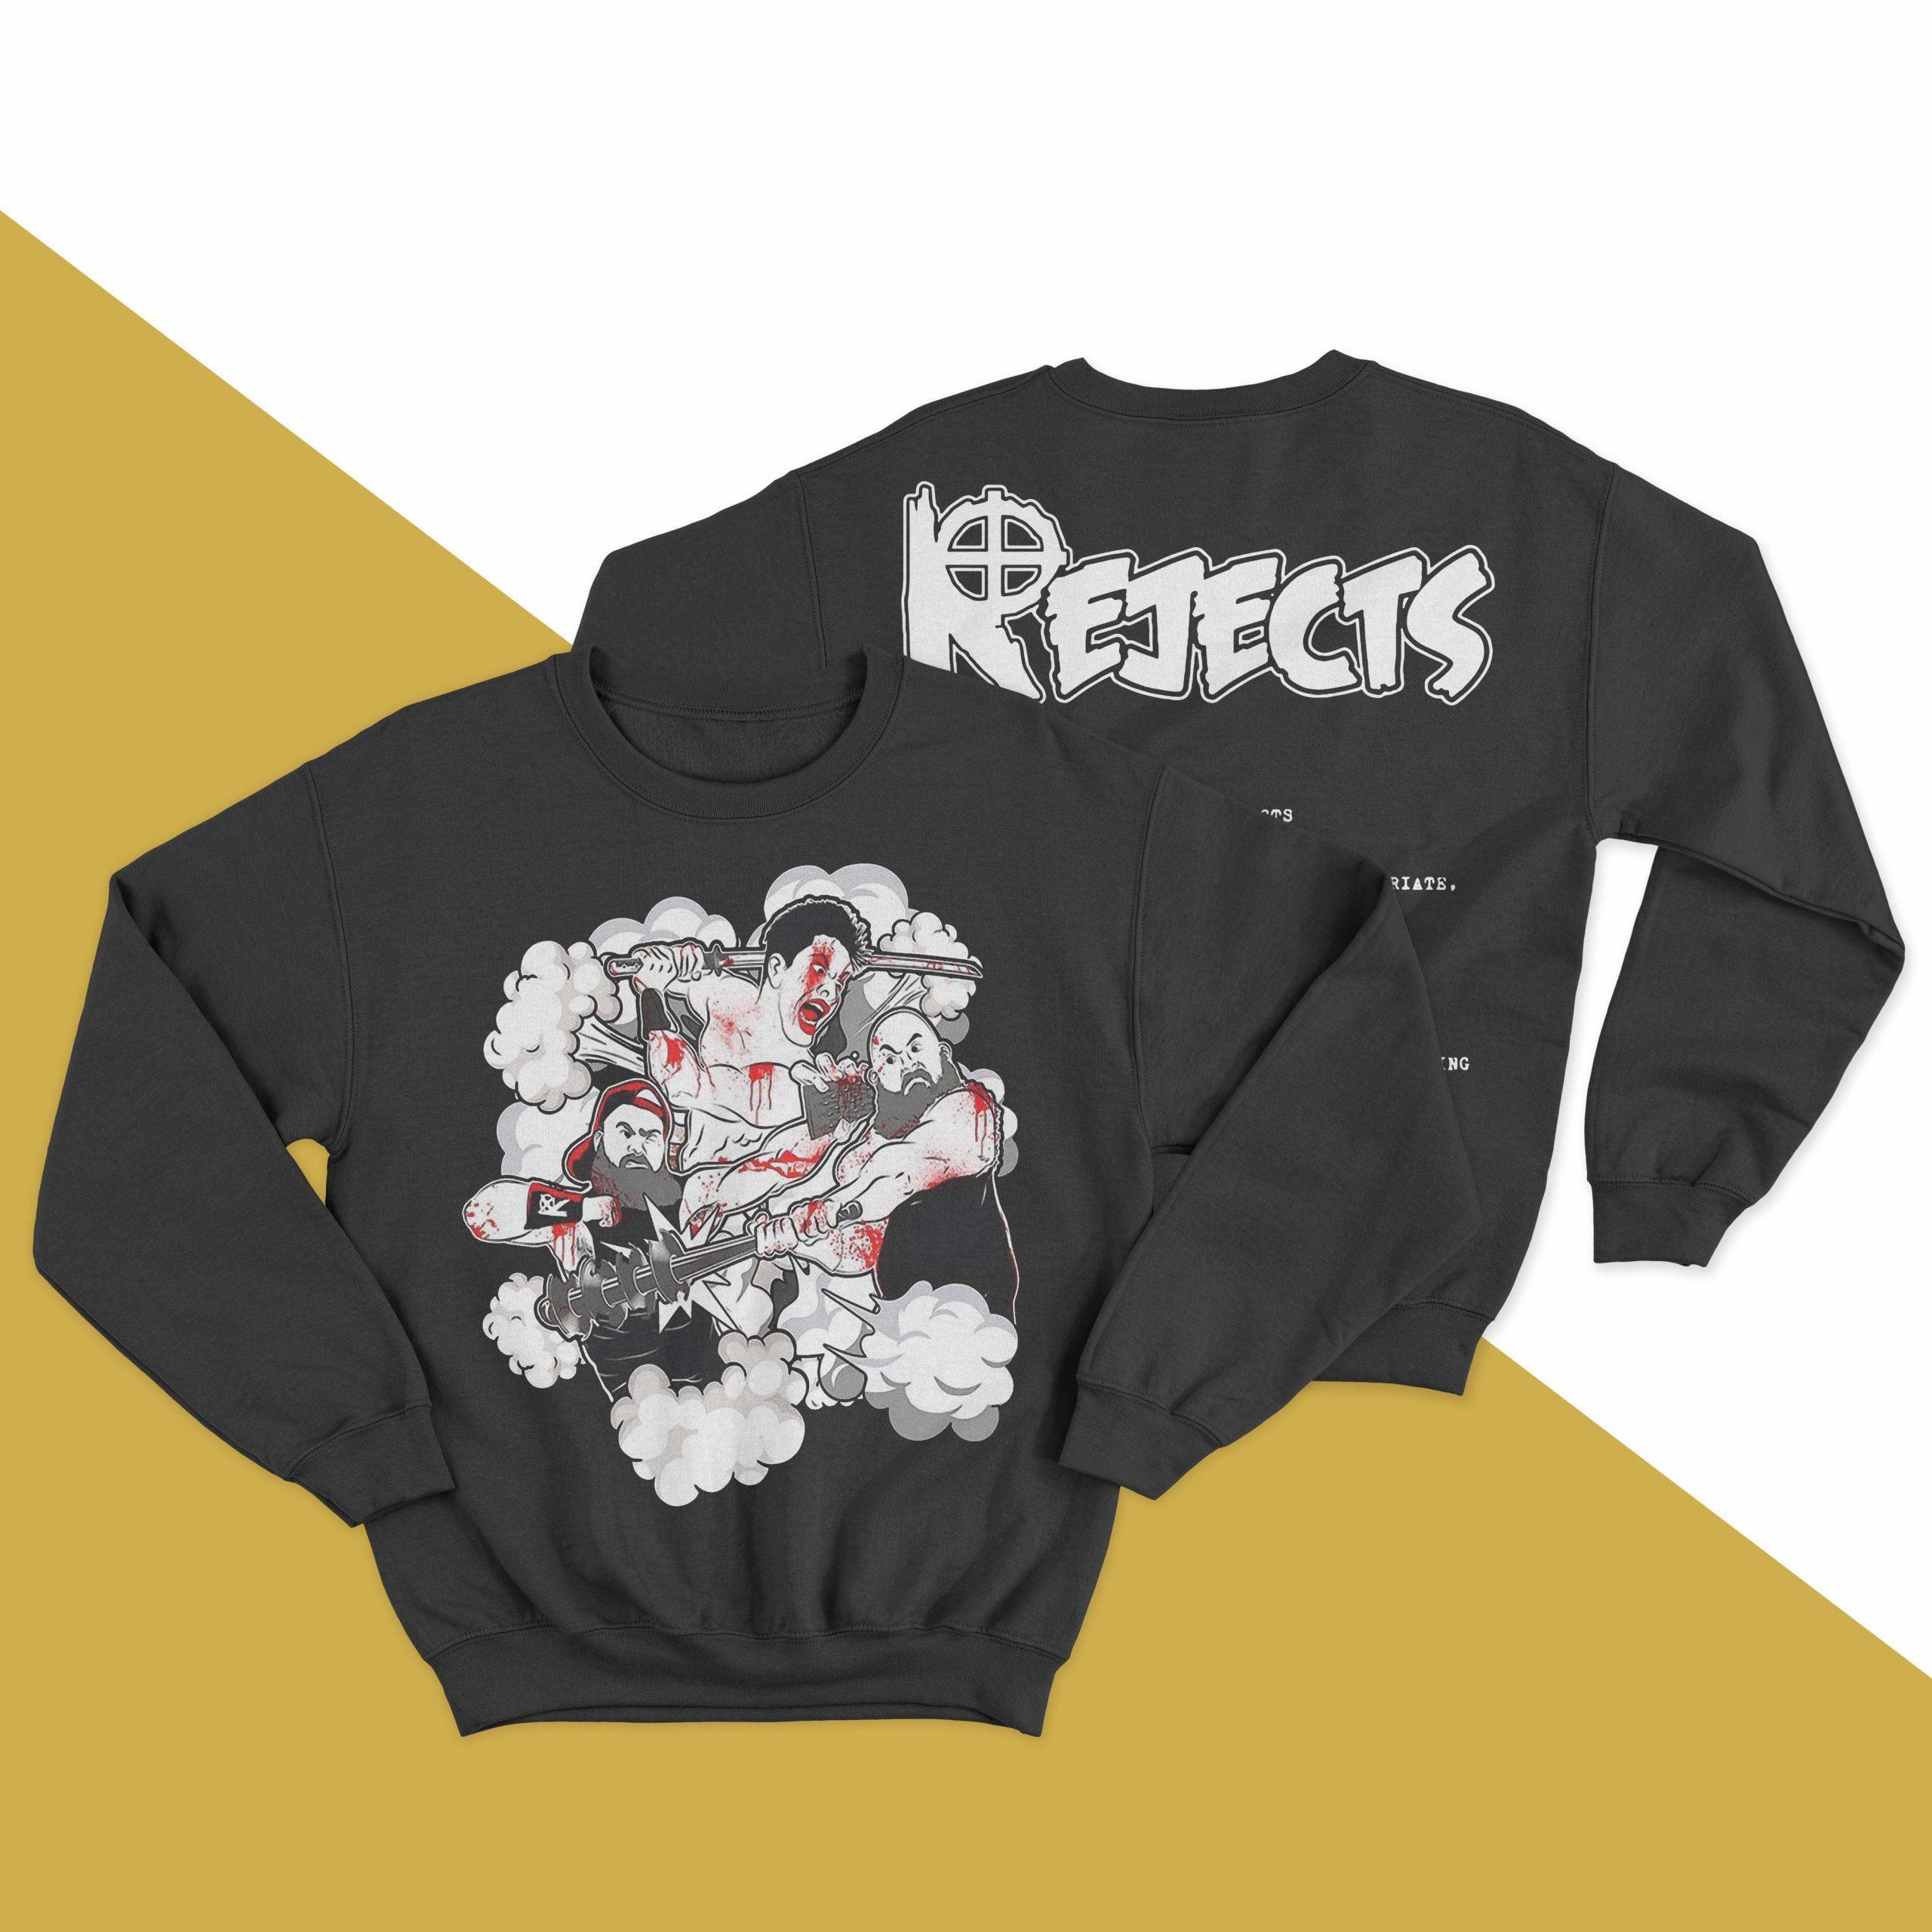 The Rejects X Crimson Mask Tank Top